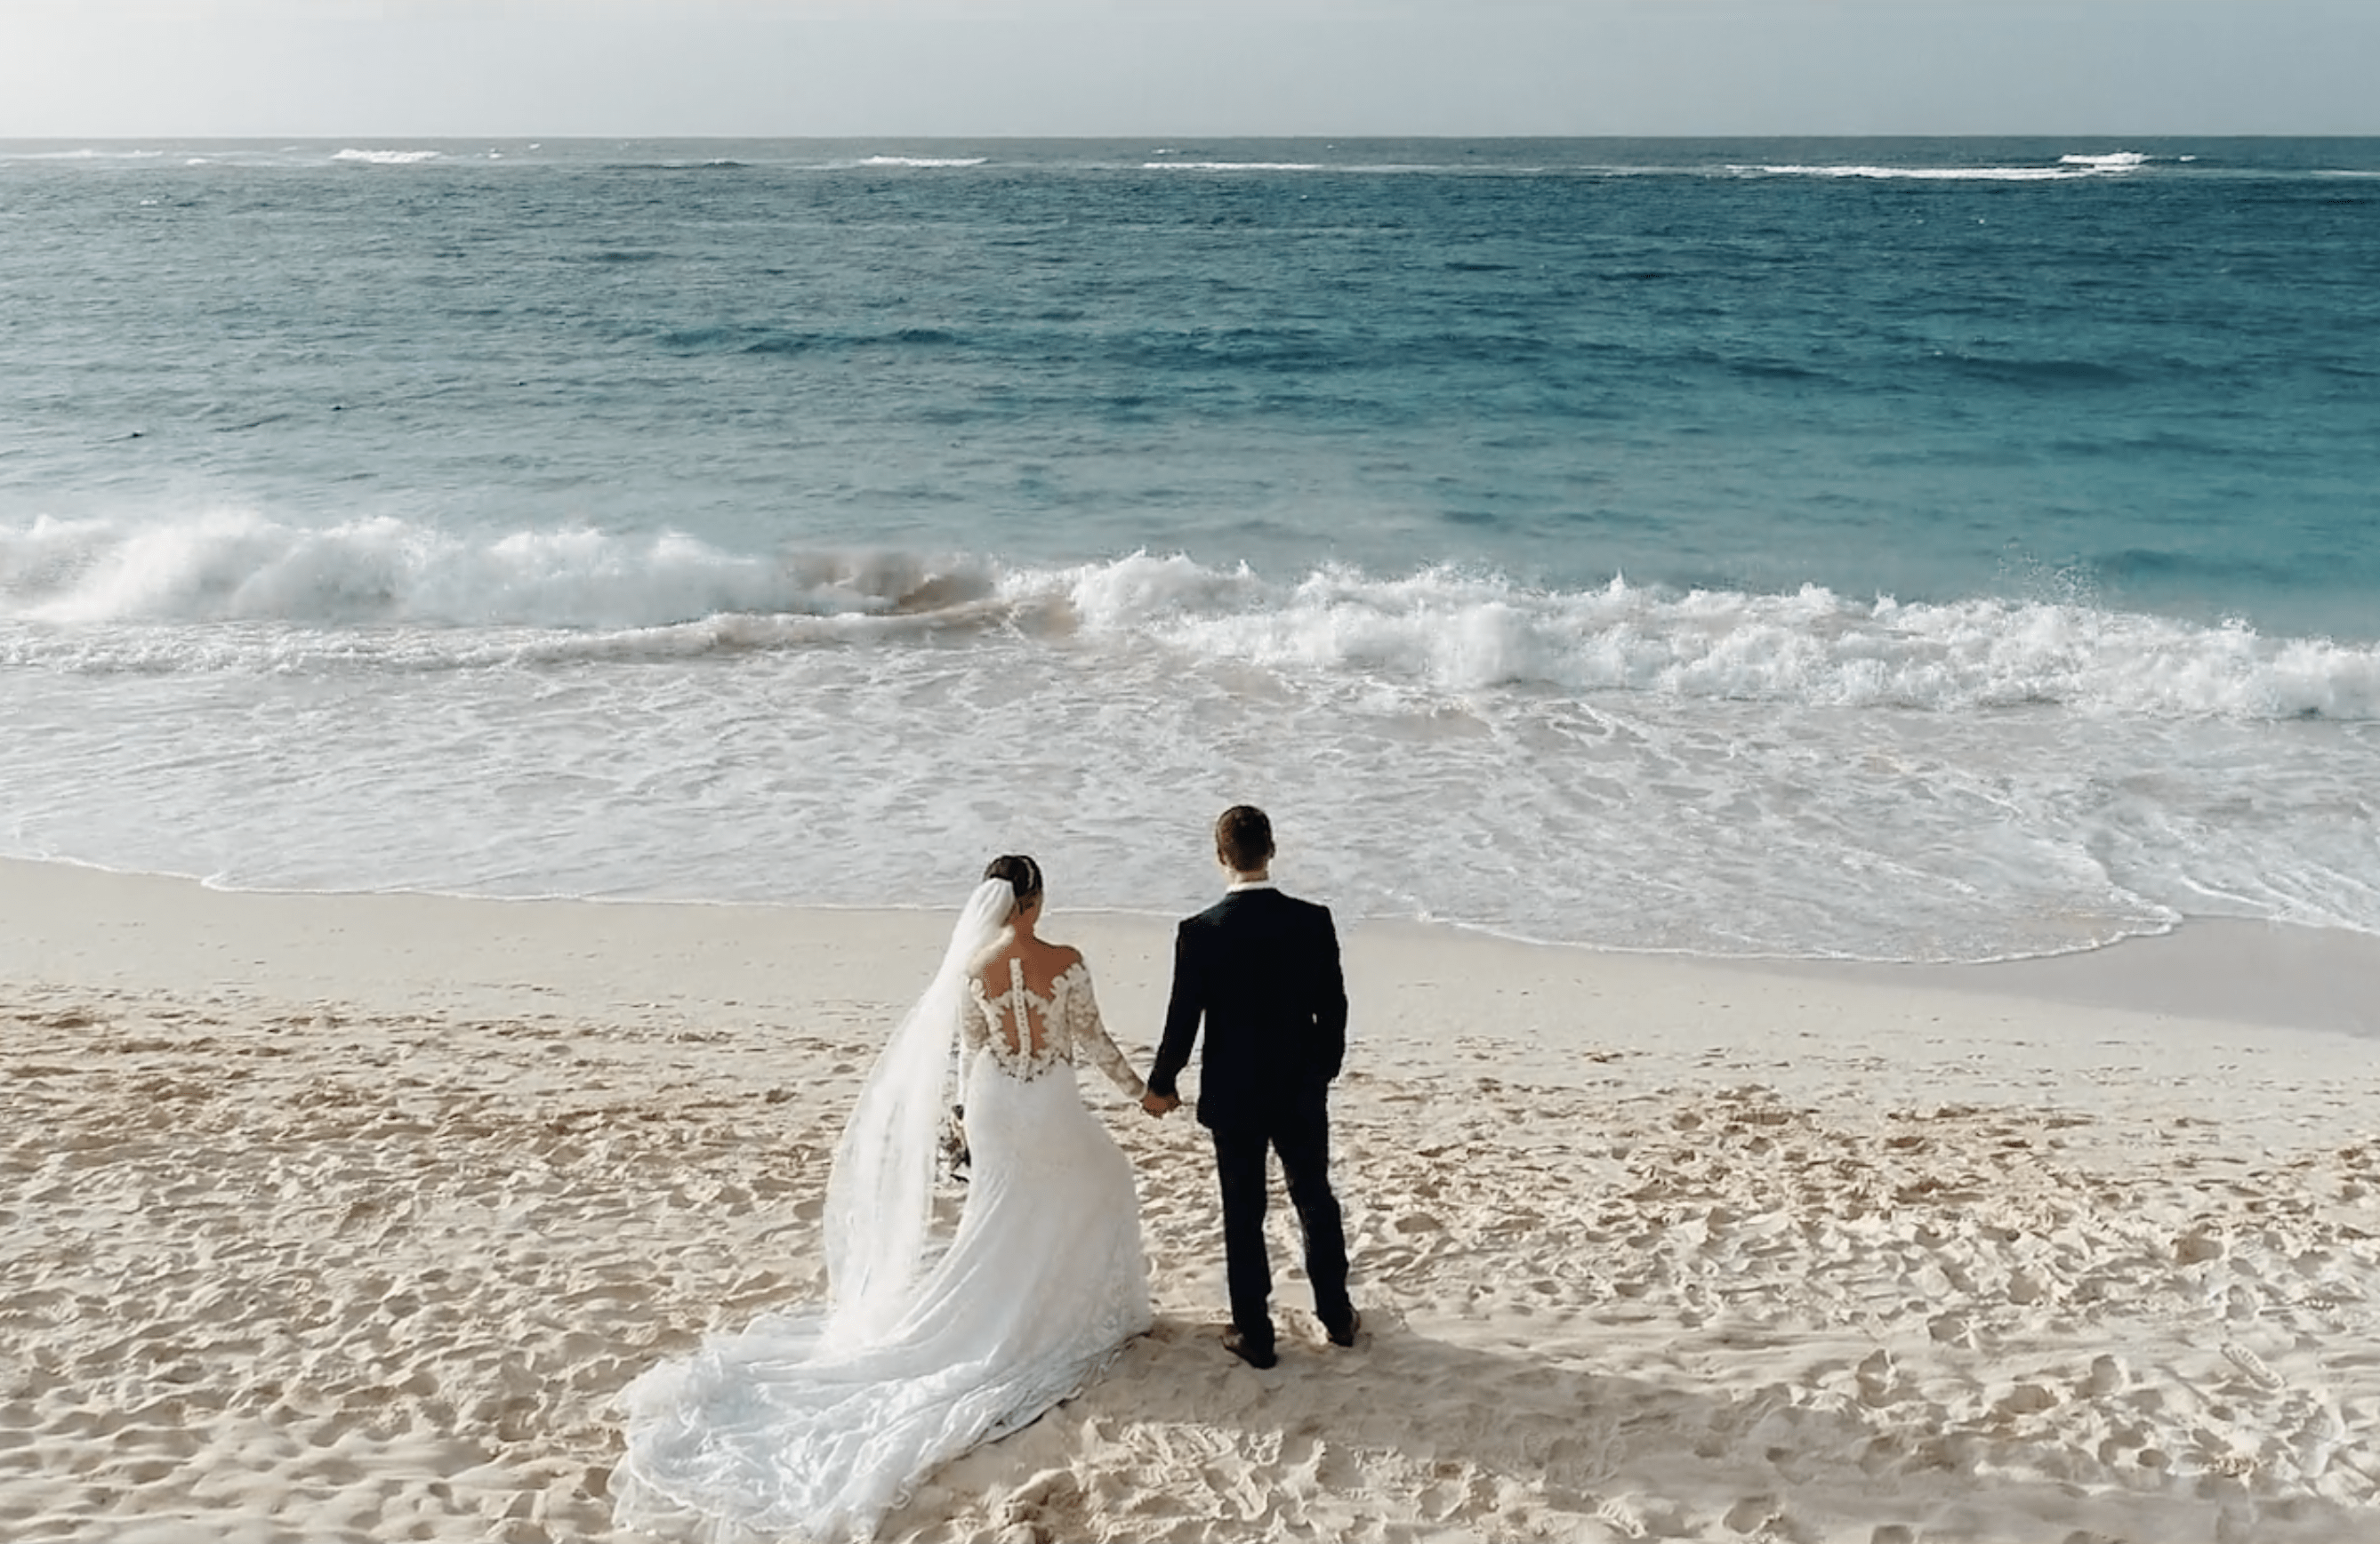 Royalton Punta Cana Wedding Video at the Eco Garden Gazebo - Tim & Stephanie